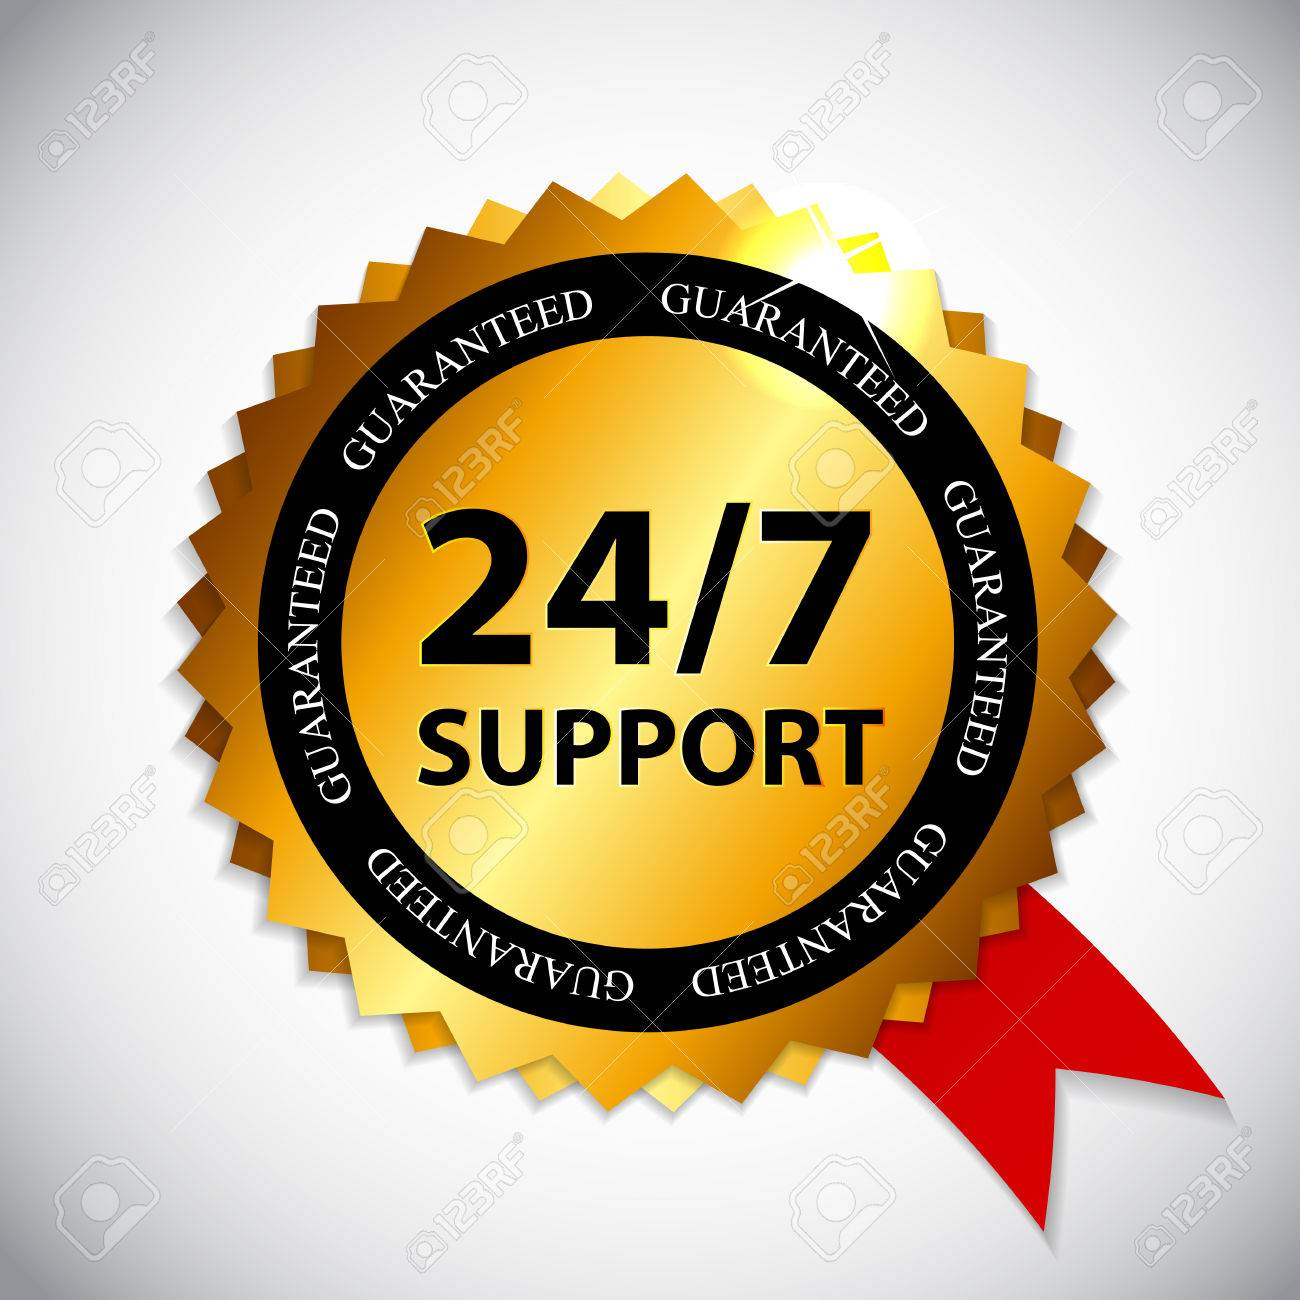 24-7 SUPPORT Sign, Label Template Royalty Free Cliparts, Vectors ...